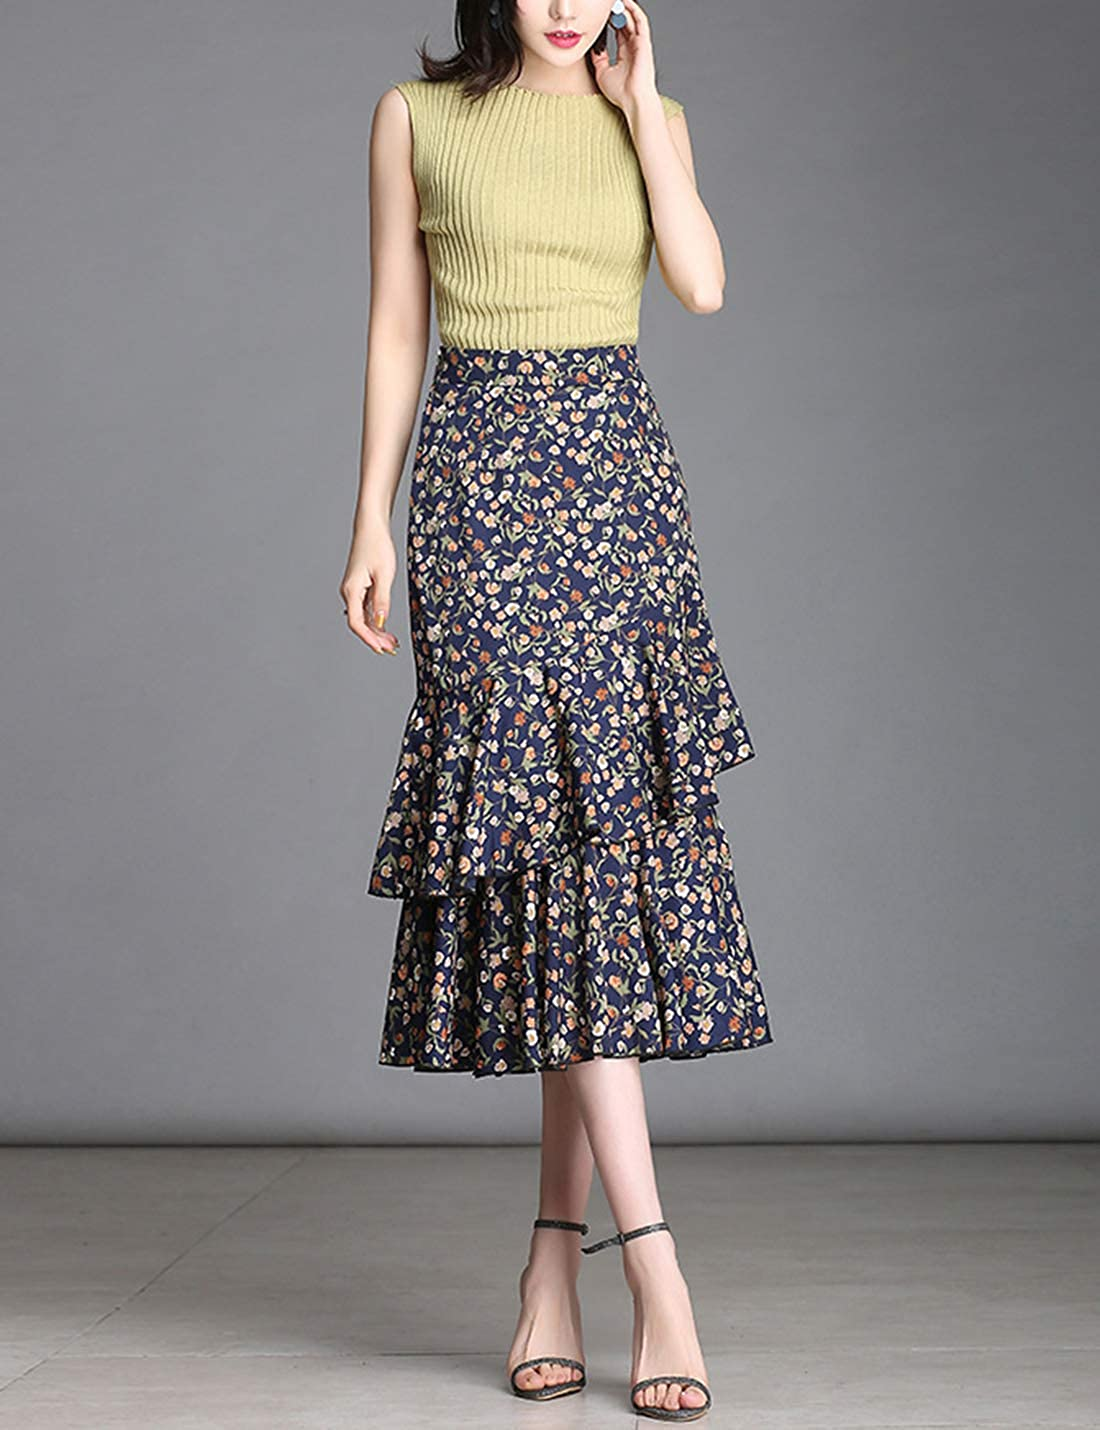 Uaneo Women's Casual Ruffle Flounce Floral Printed Long Skirt (Small, Navy)